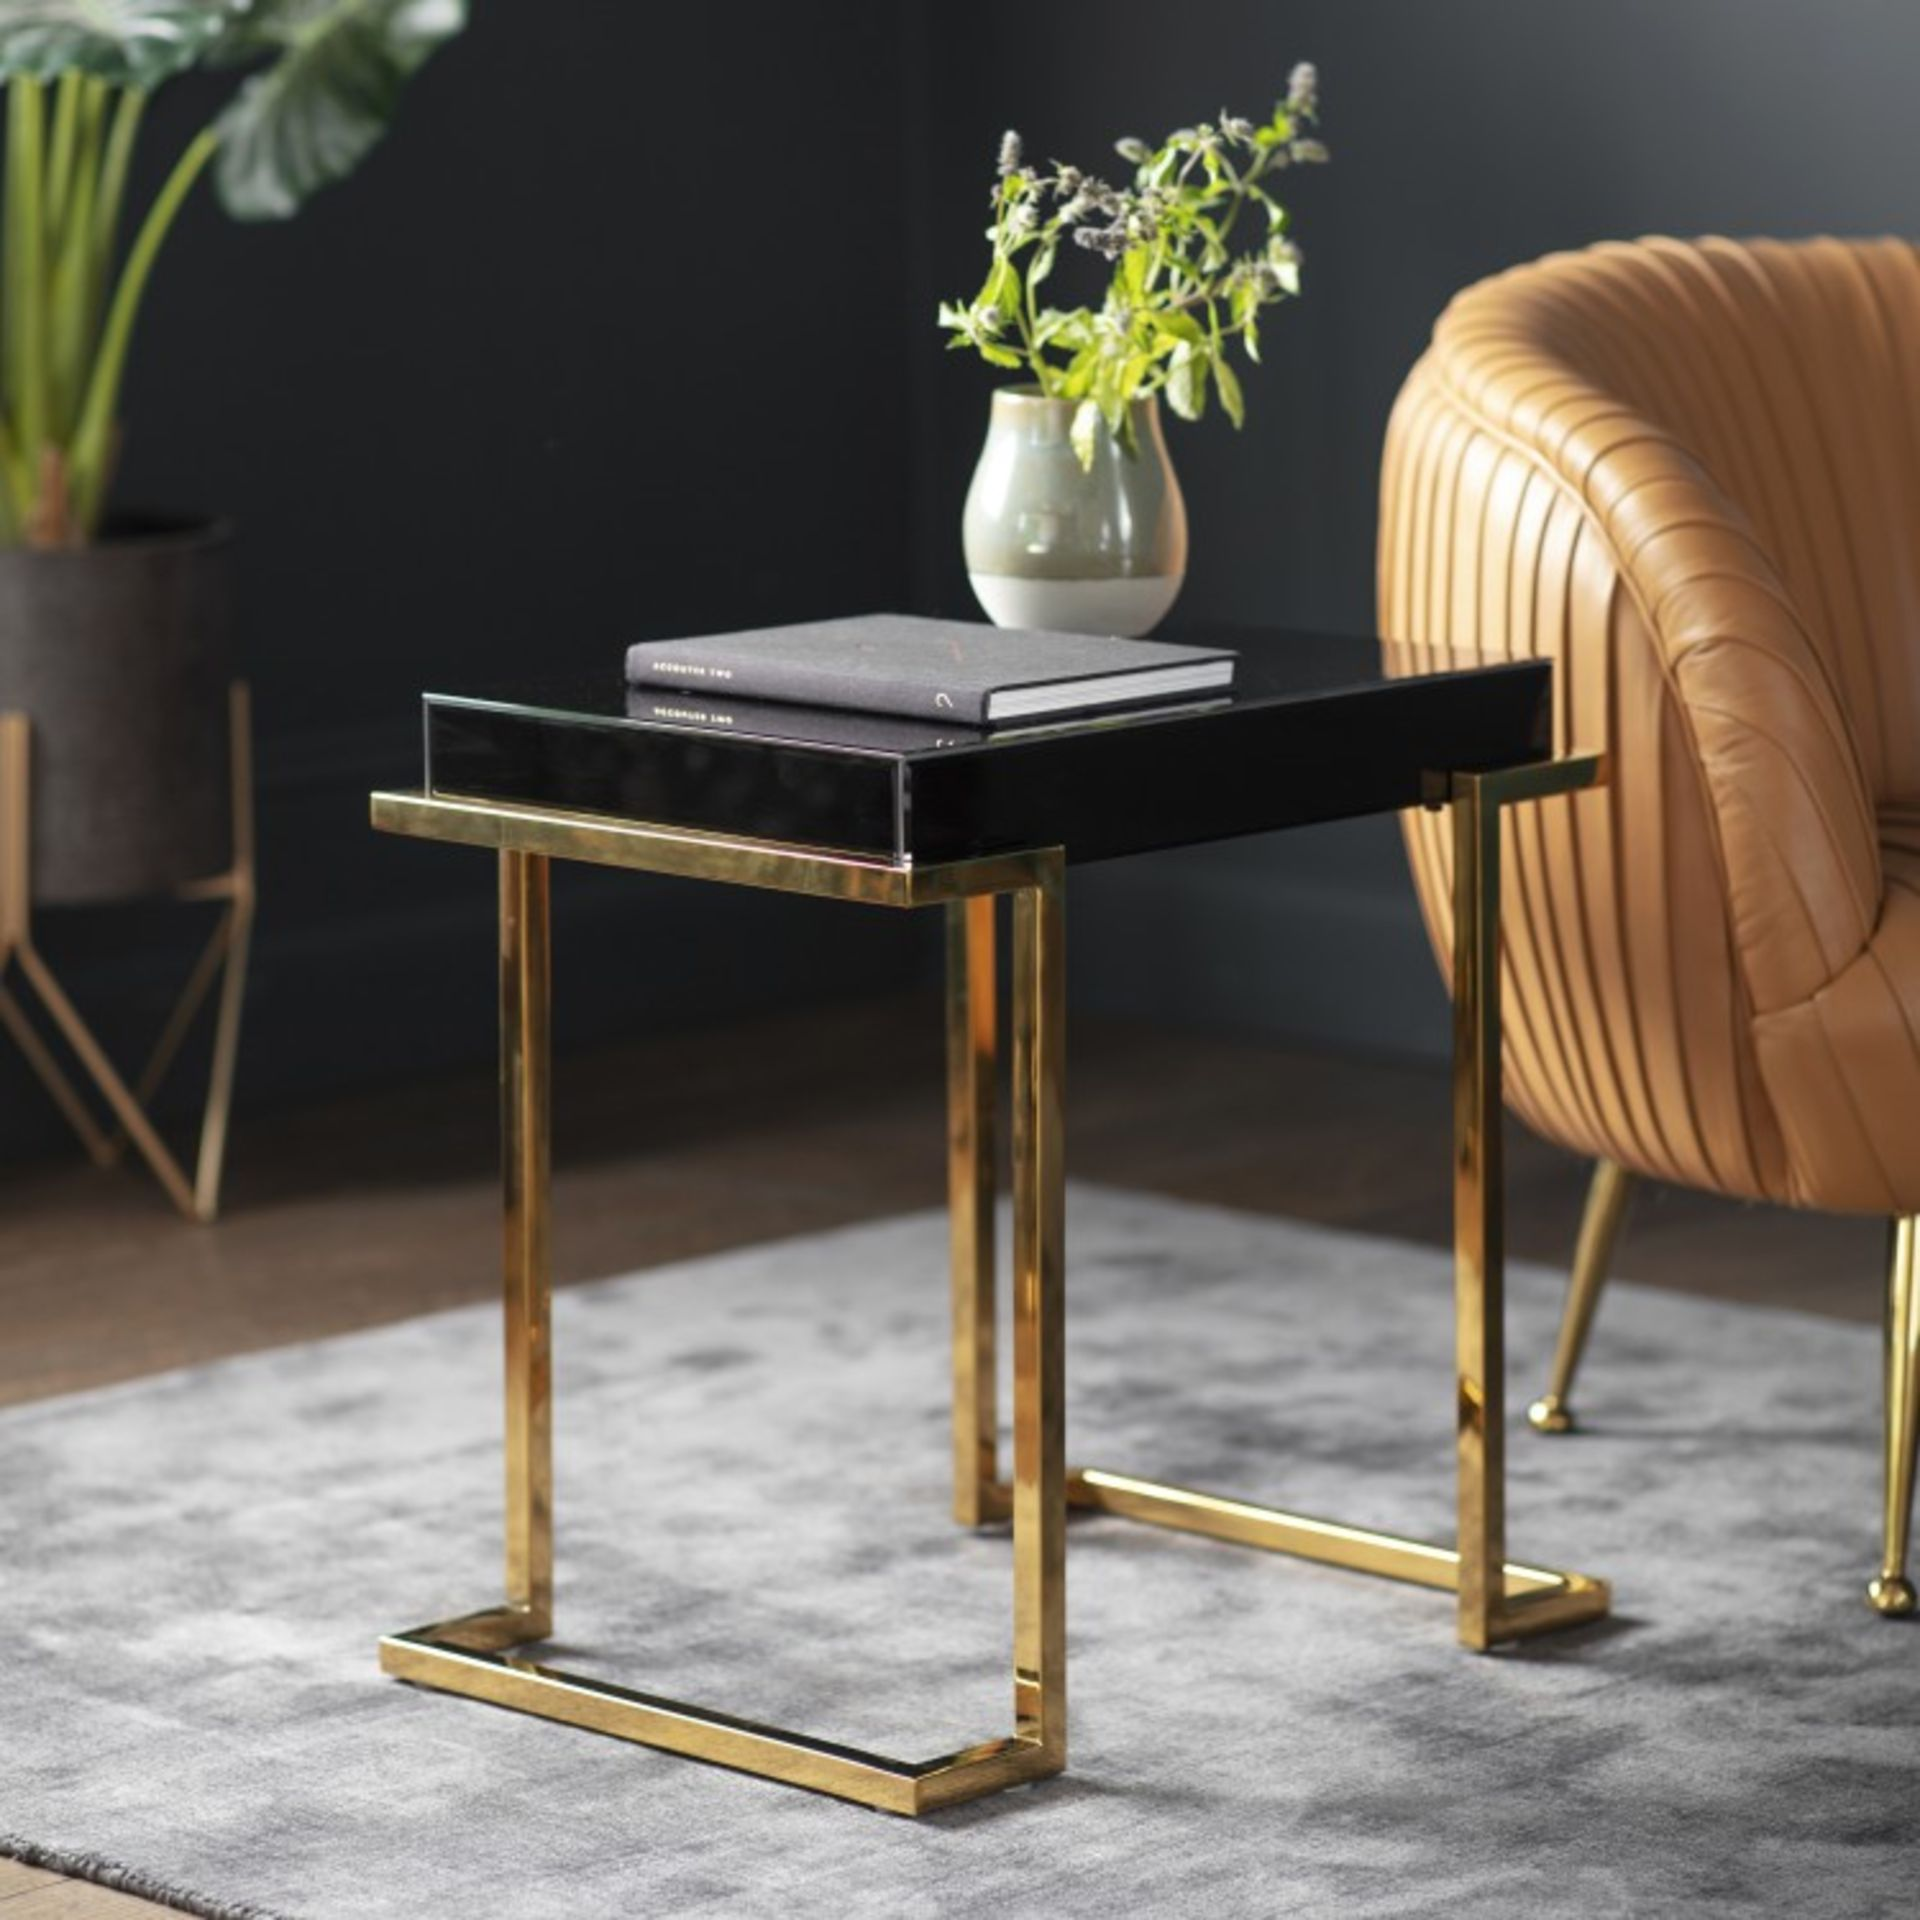 Lot 710 - Delray Black Mirrored Side Table